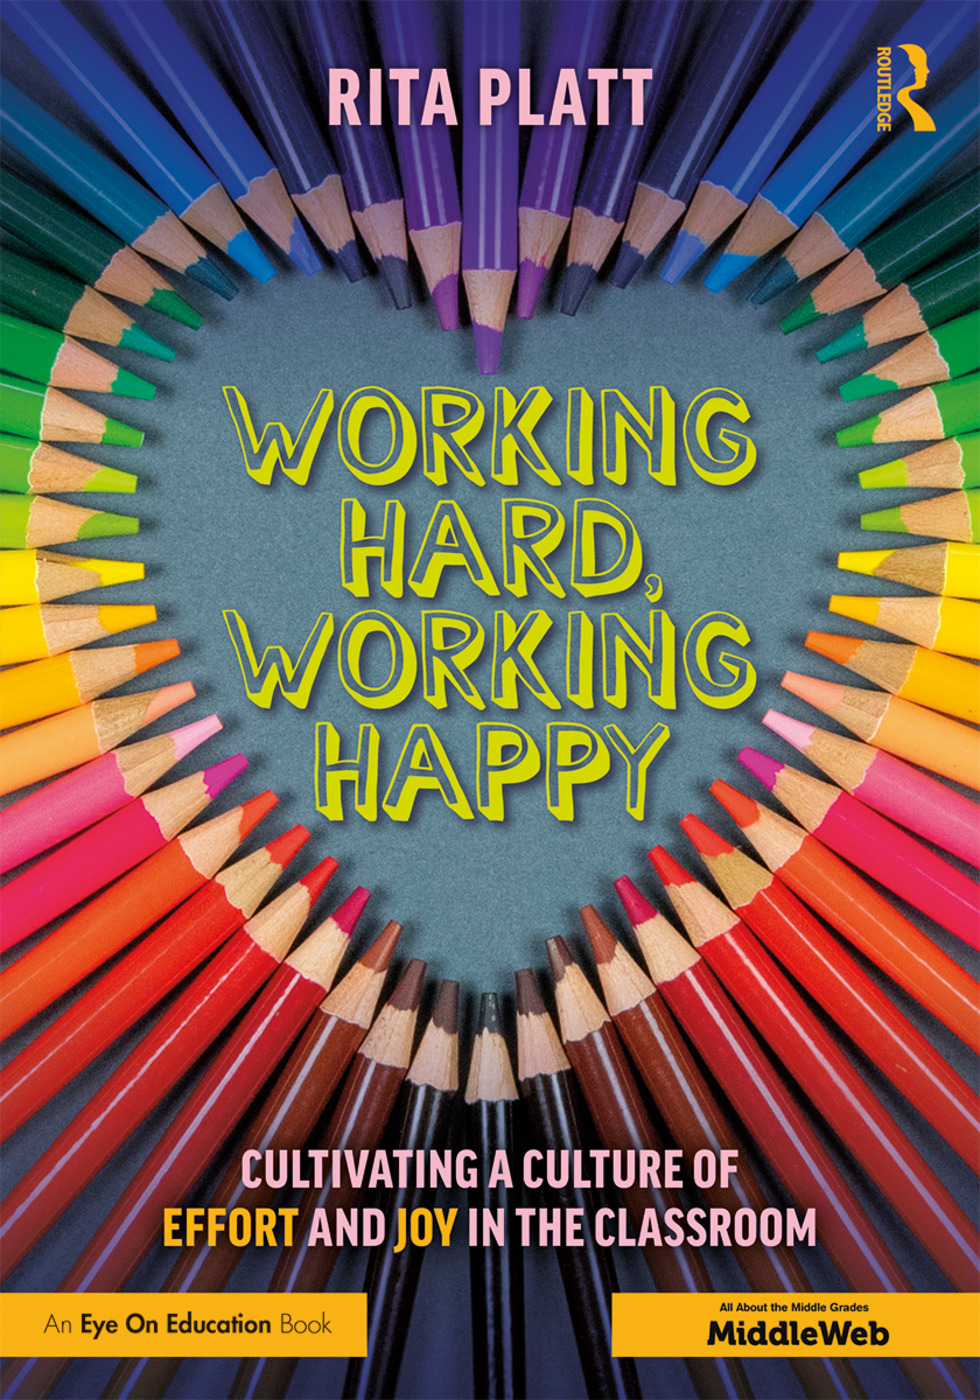 Working Hard, Working Happy: Cultivating a Culture of Effort and Joy in the Classroom book cover